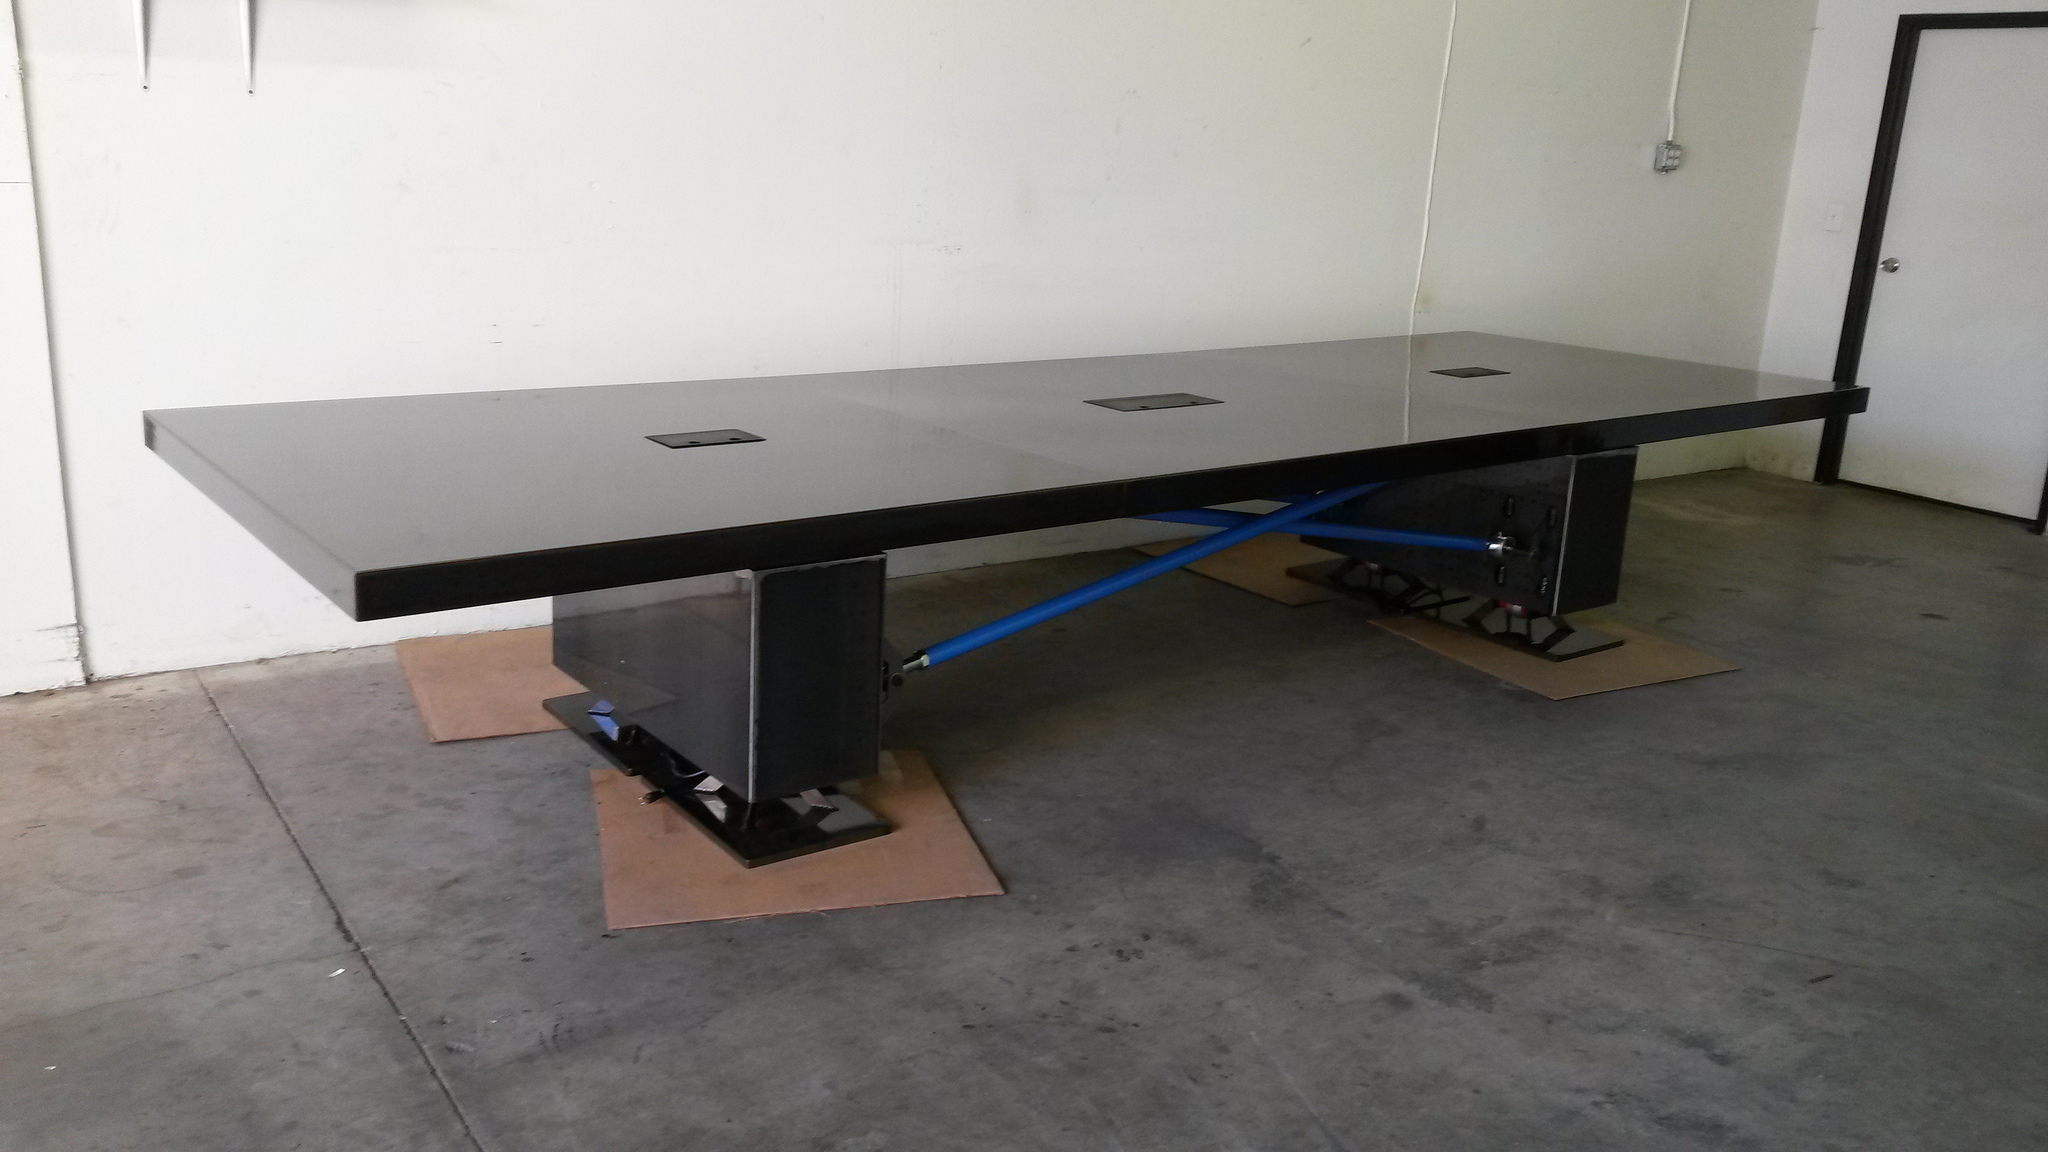 Hot-roll-steel-conference-table-2.jpg